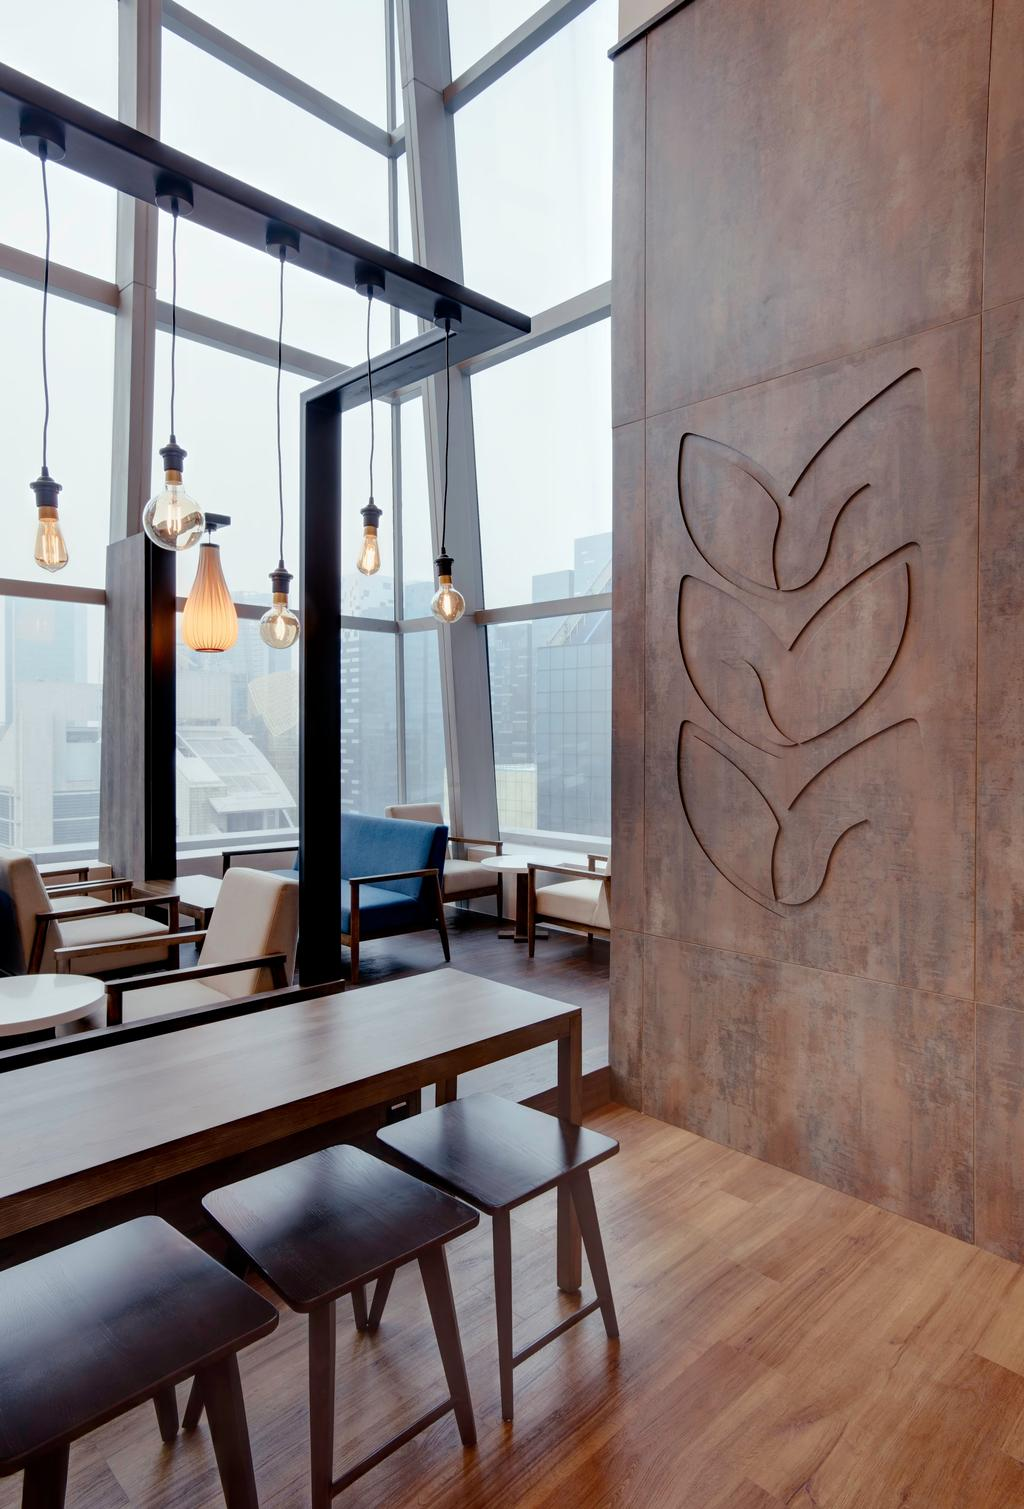 Joe & Dough (Capitol Tower), Commercial, Interior Designer, Liid Studio, Modern, Wall Mural, Wooden Table, Wood Bench, Wooden Chairs, Pendant Lights, Chair, Furniture